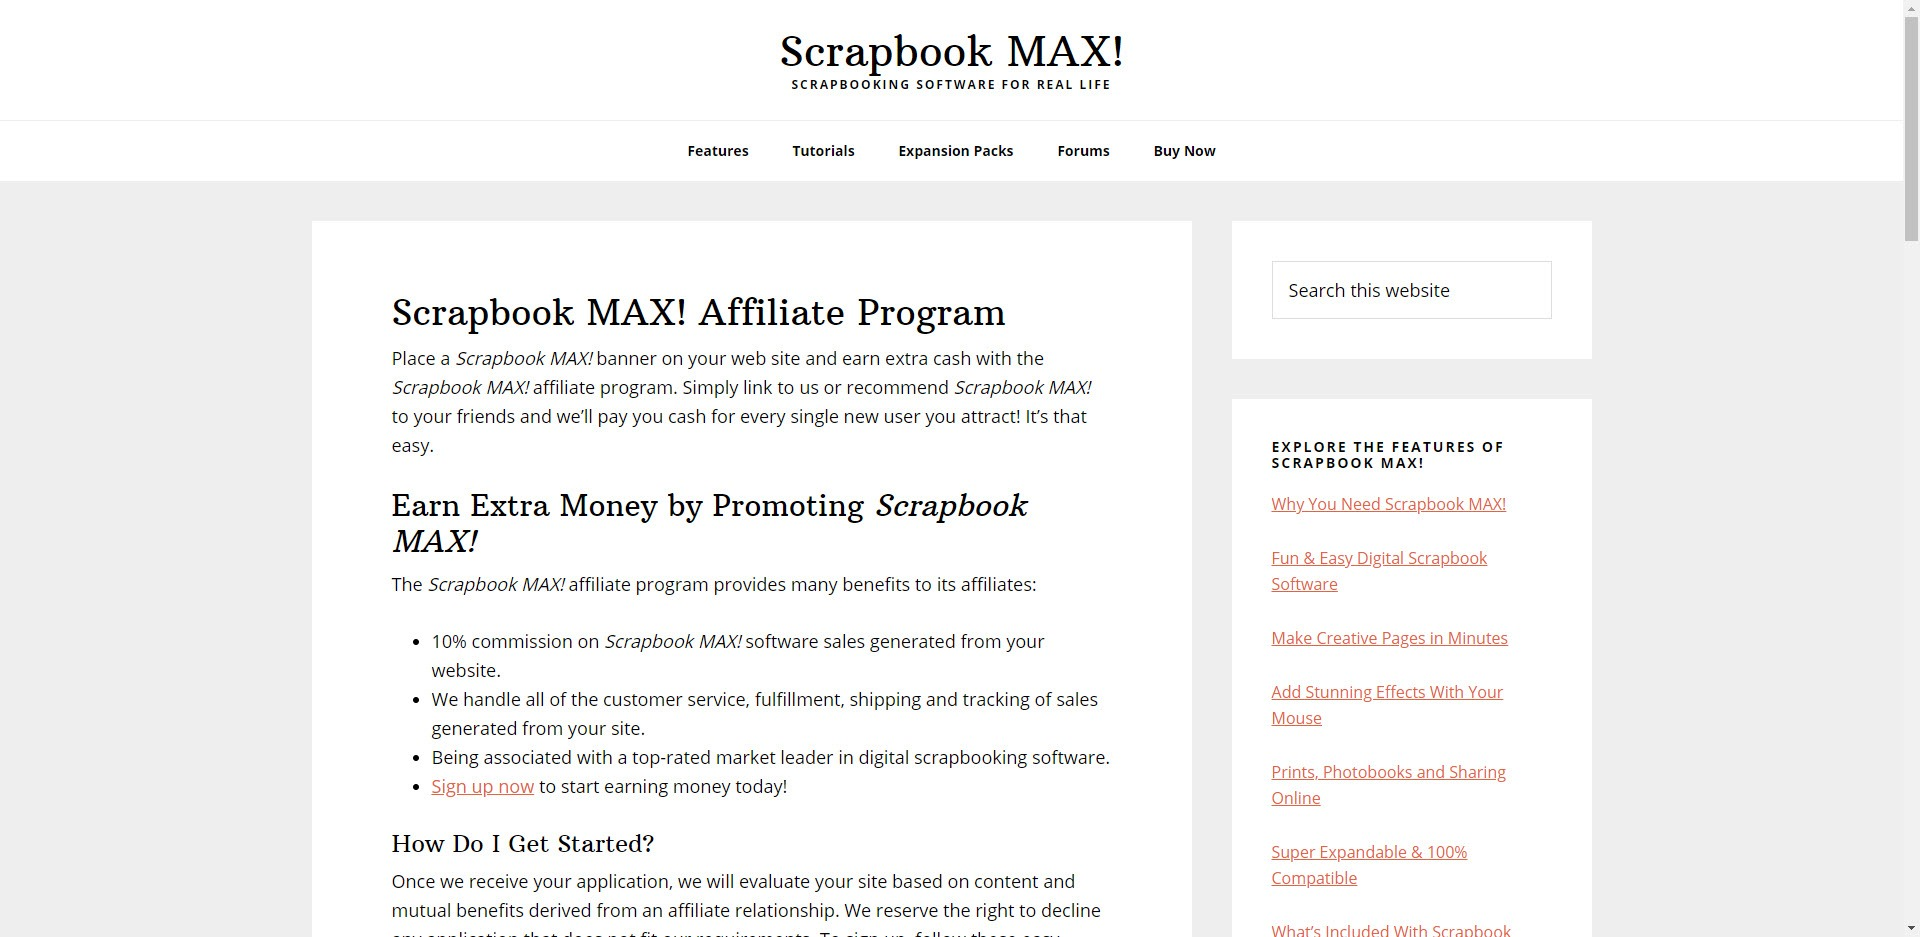 Scrapbooking Affiliate Programs - Scrapbook MAX affiliate